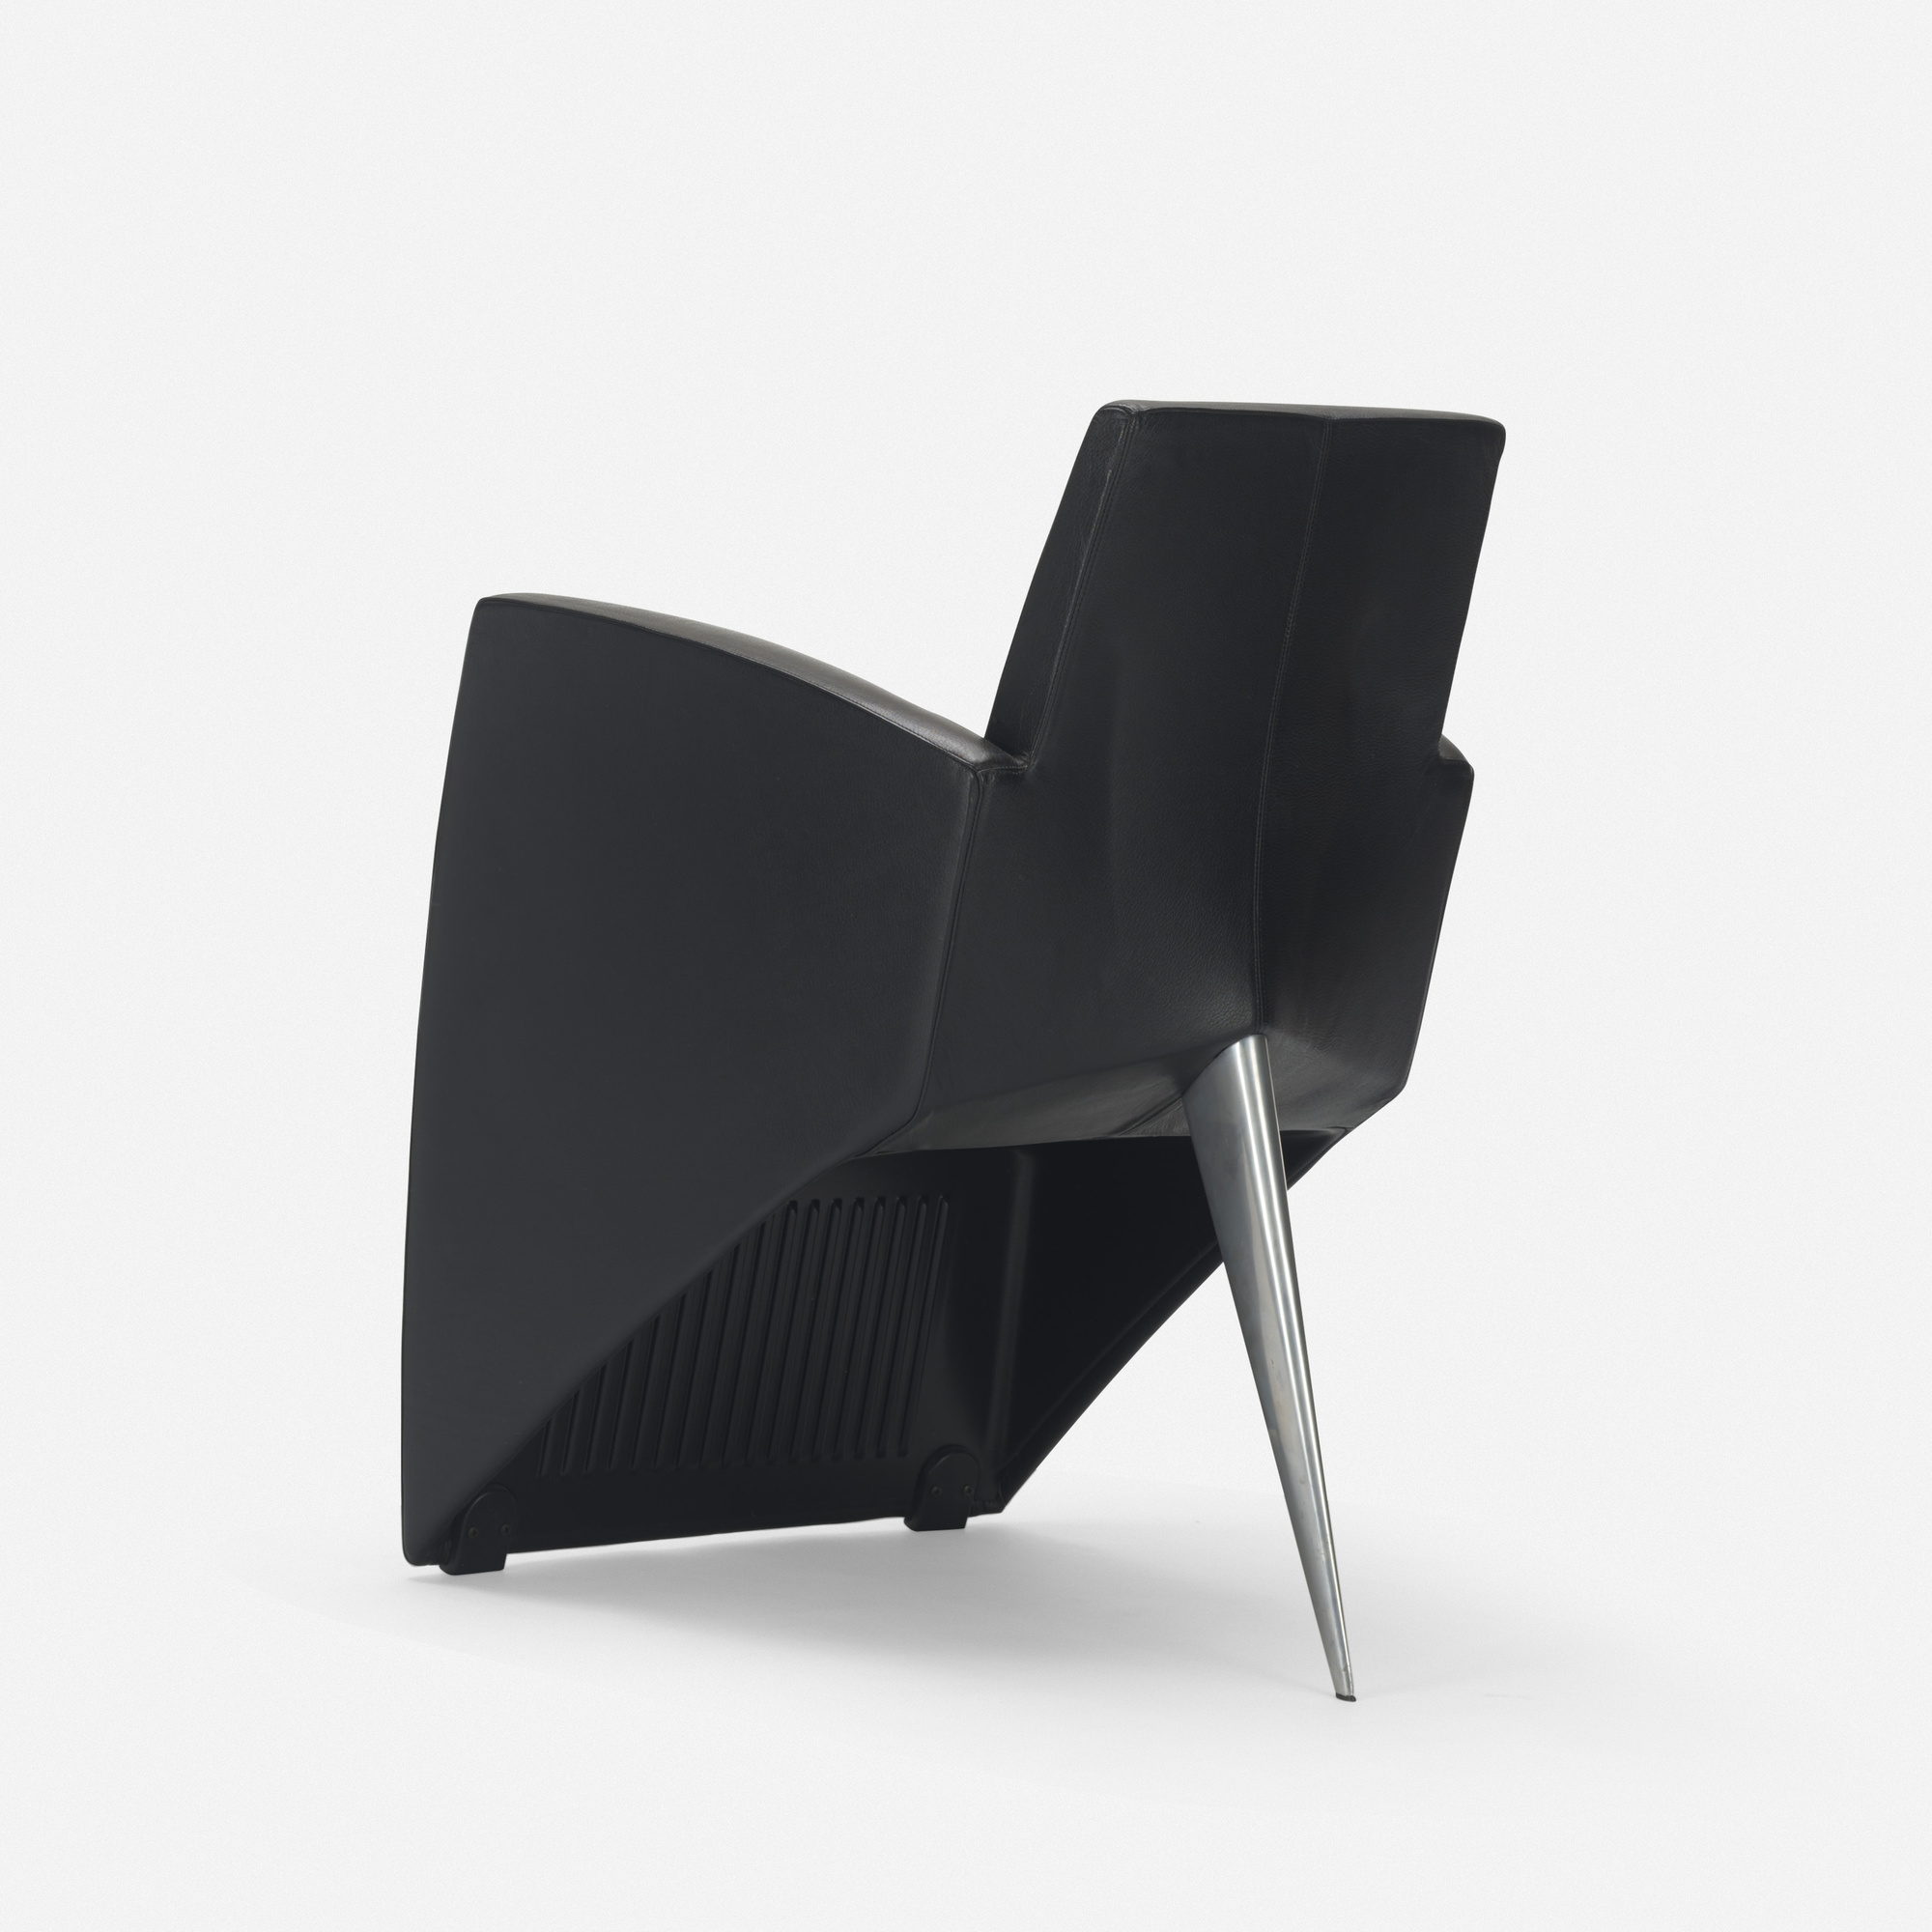 240 philippe starck j serie lang lounge chair. Black Bedroom Furniture Sets. Home Design Ideas